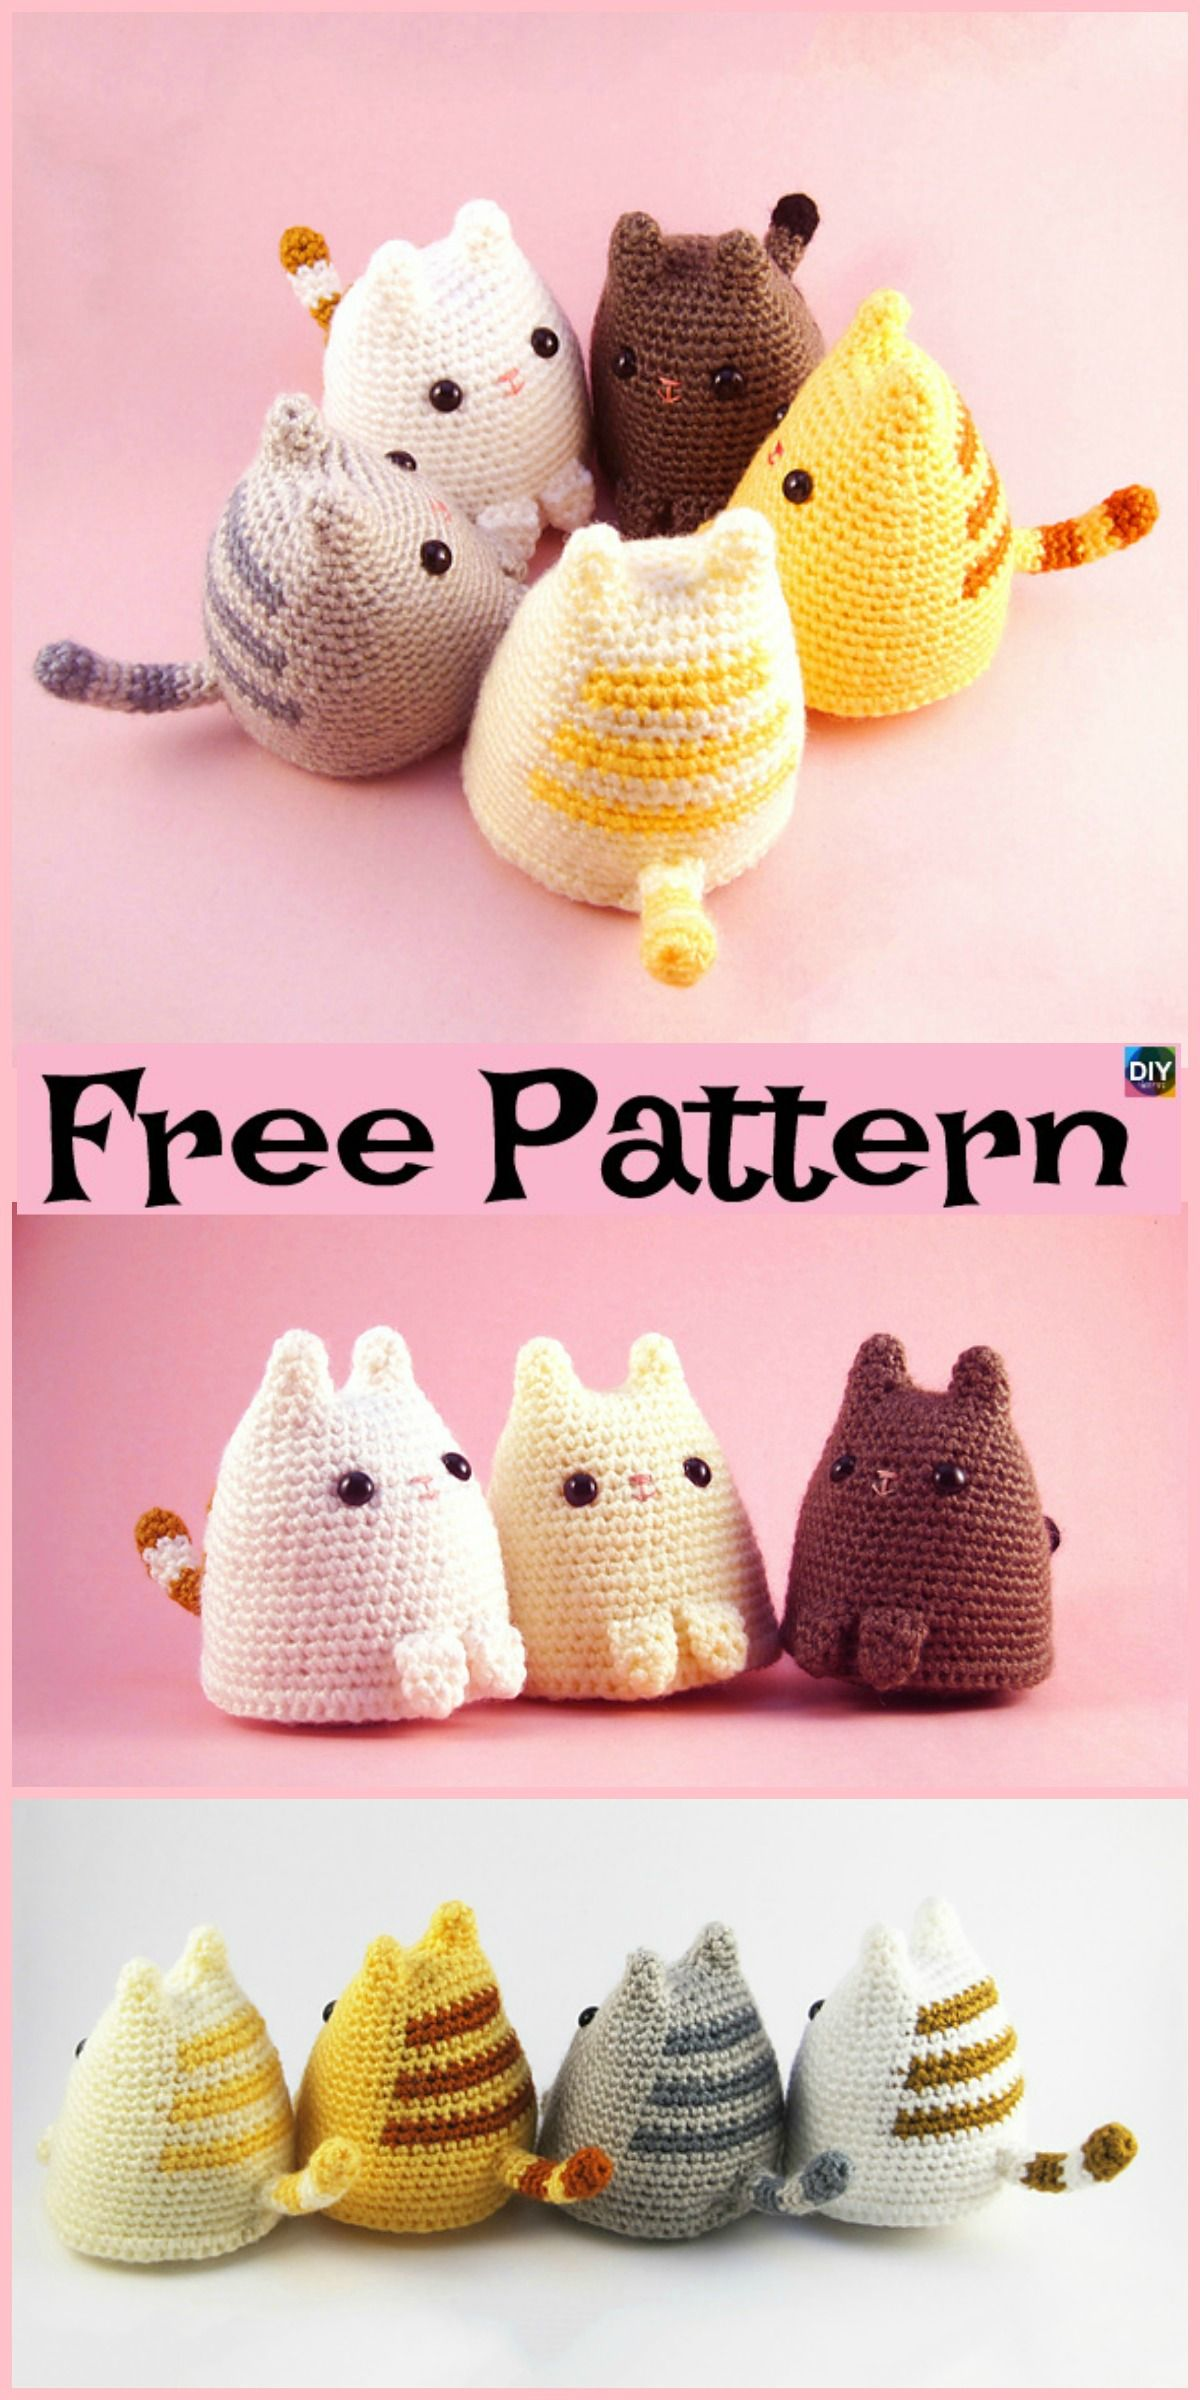 Crochet Dumpling Kitty - Free Pattern #crochetpatterns